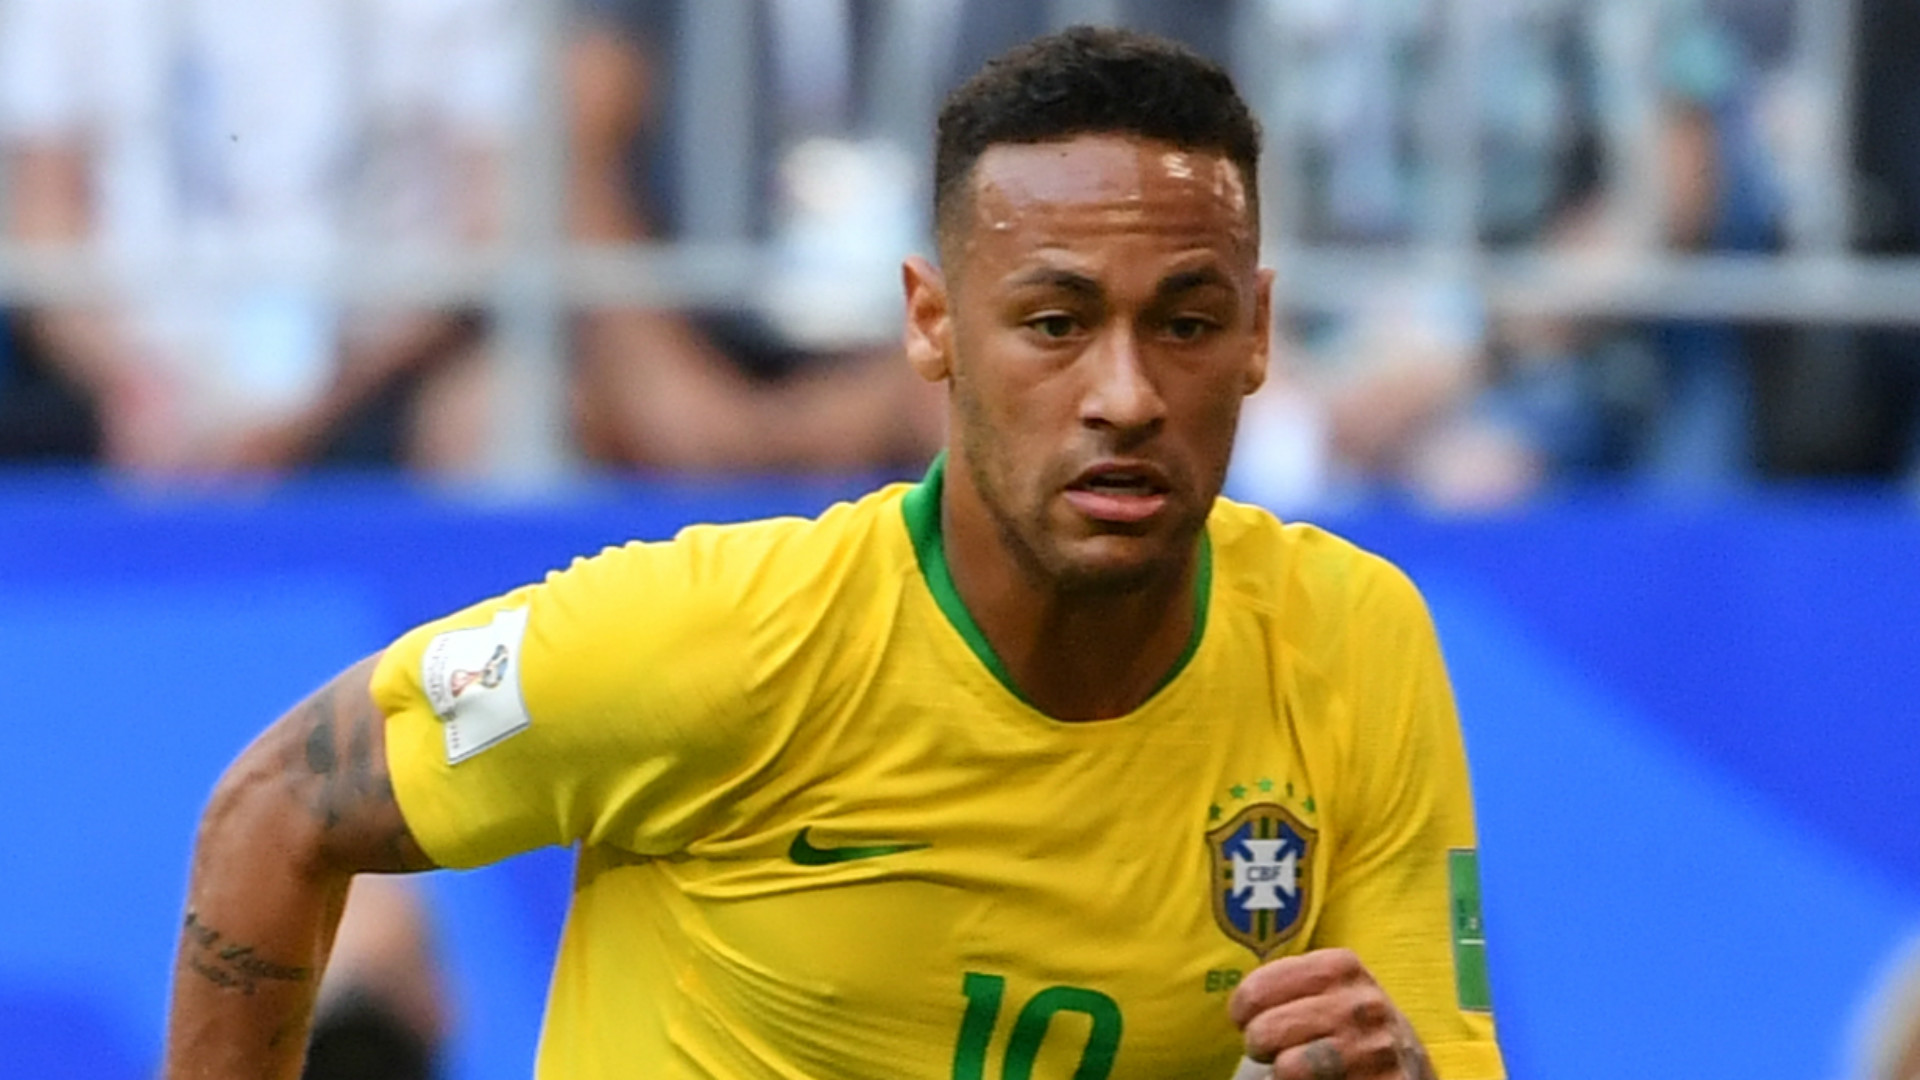 Brazil aim to beat Belgium over 90 minutes in quarter-finals